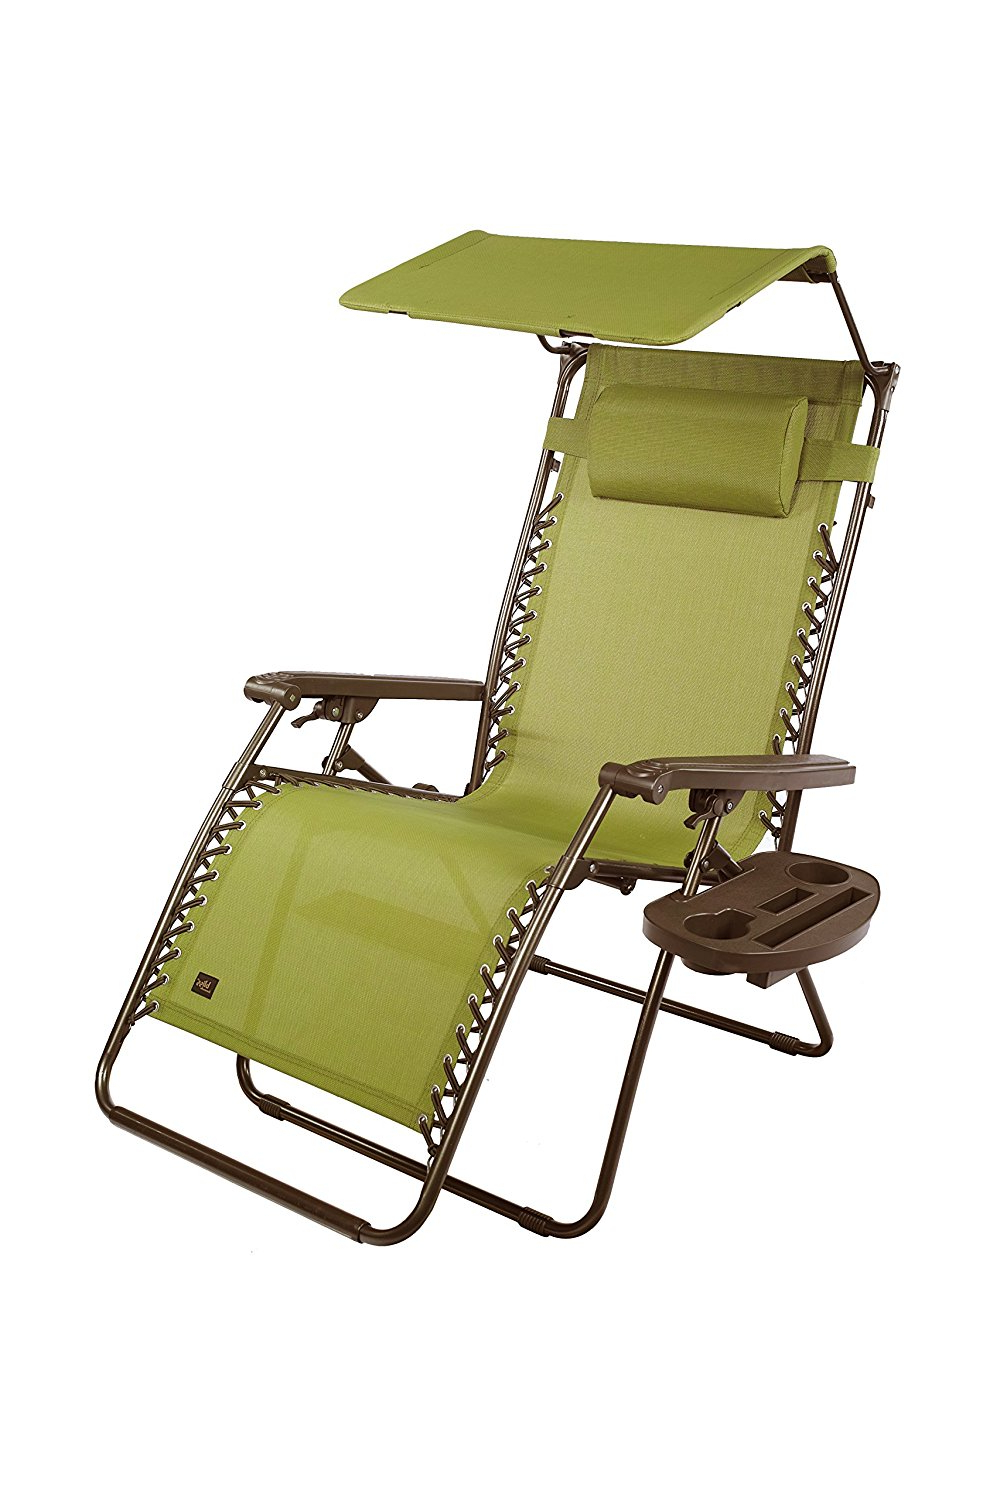 Deluxe Padded Chairs With Canopy And Tray For Well Known Cheap Ute Tray Canopy, Find Ute Tray Canopy Deals On Line At (View 6 of 25)